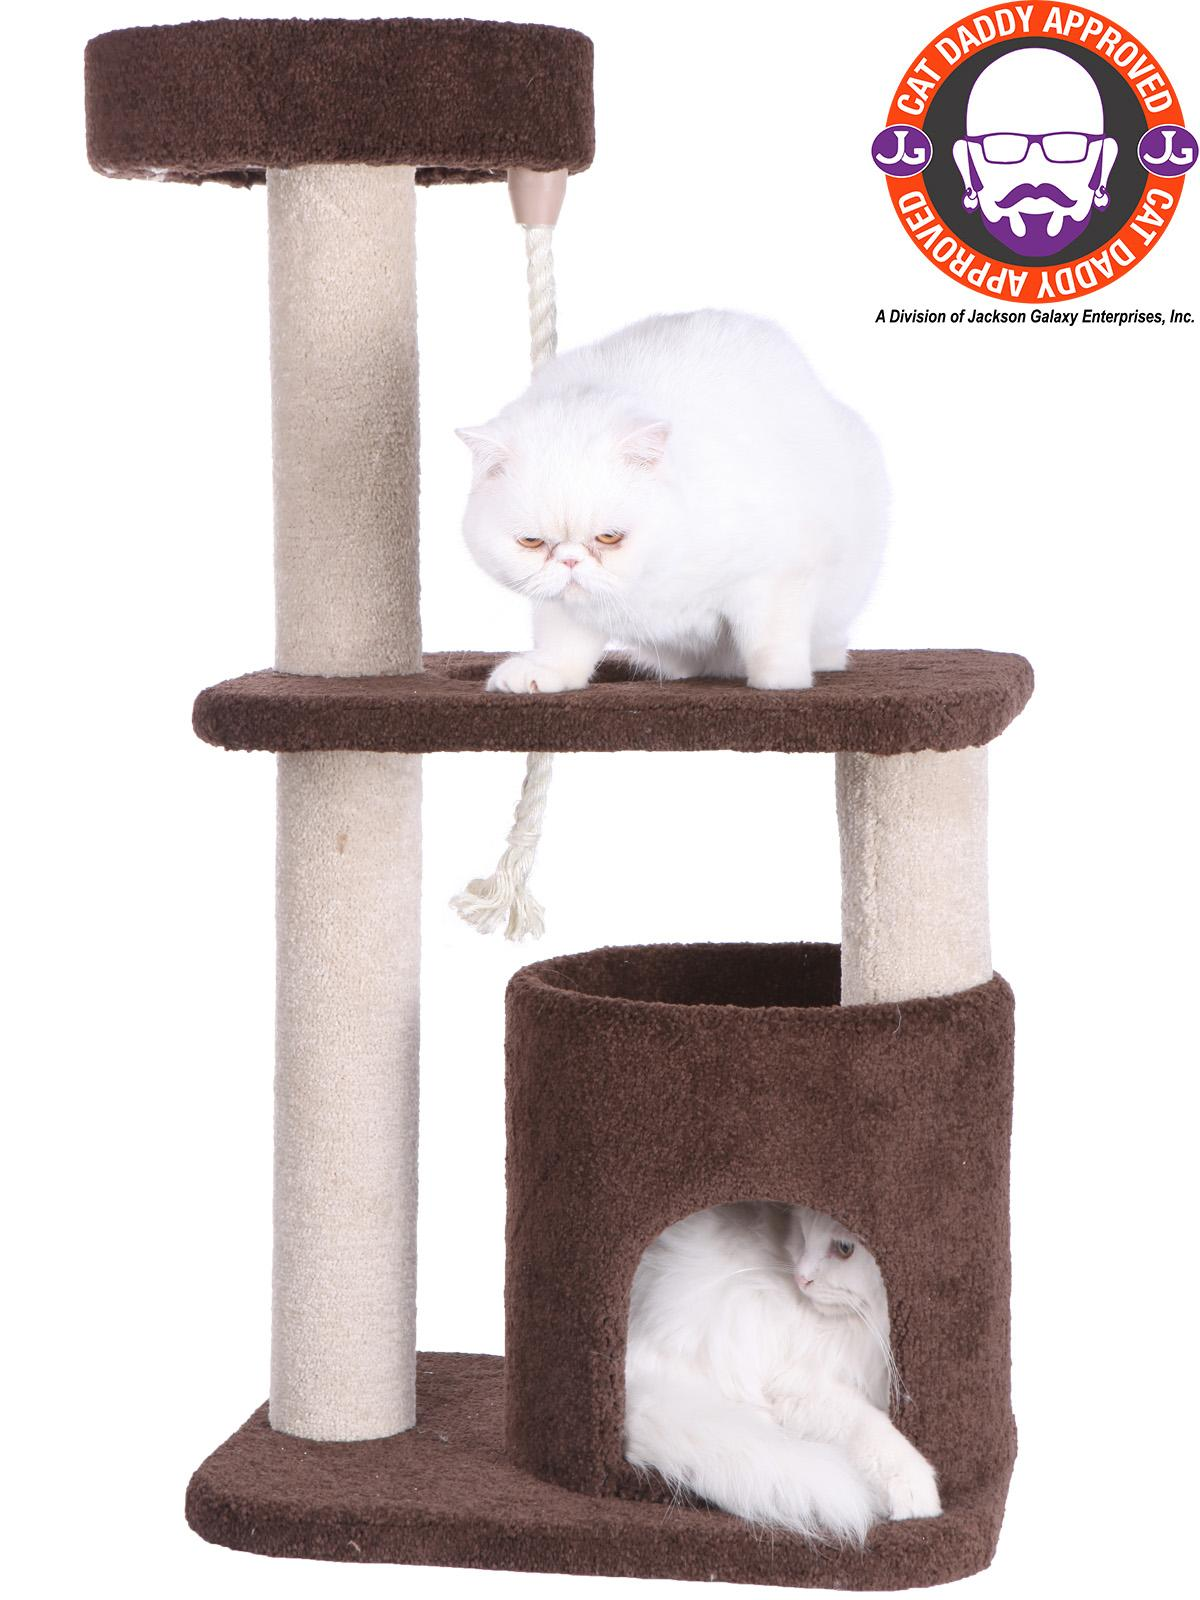 Armarkat Premium Carpeted Cat Tree Model F3703,coffee brown